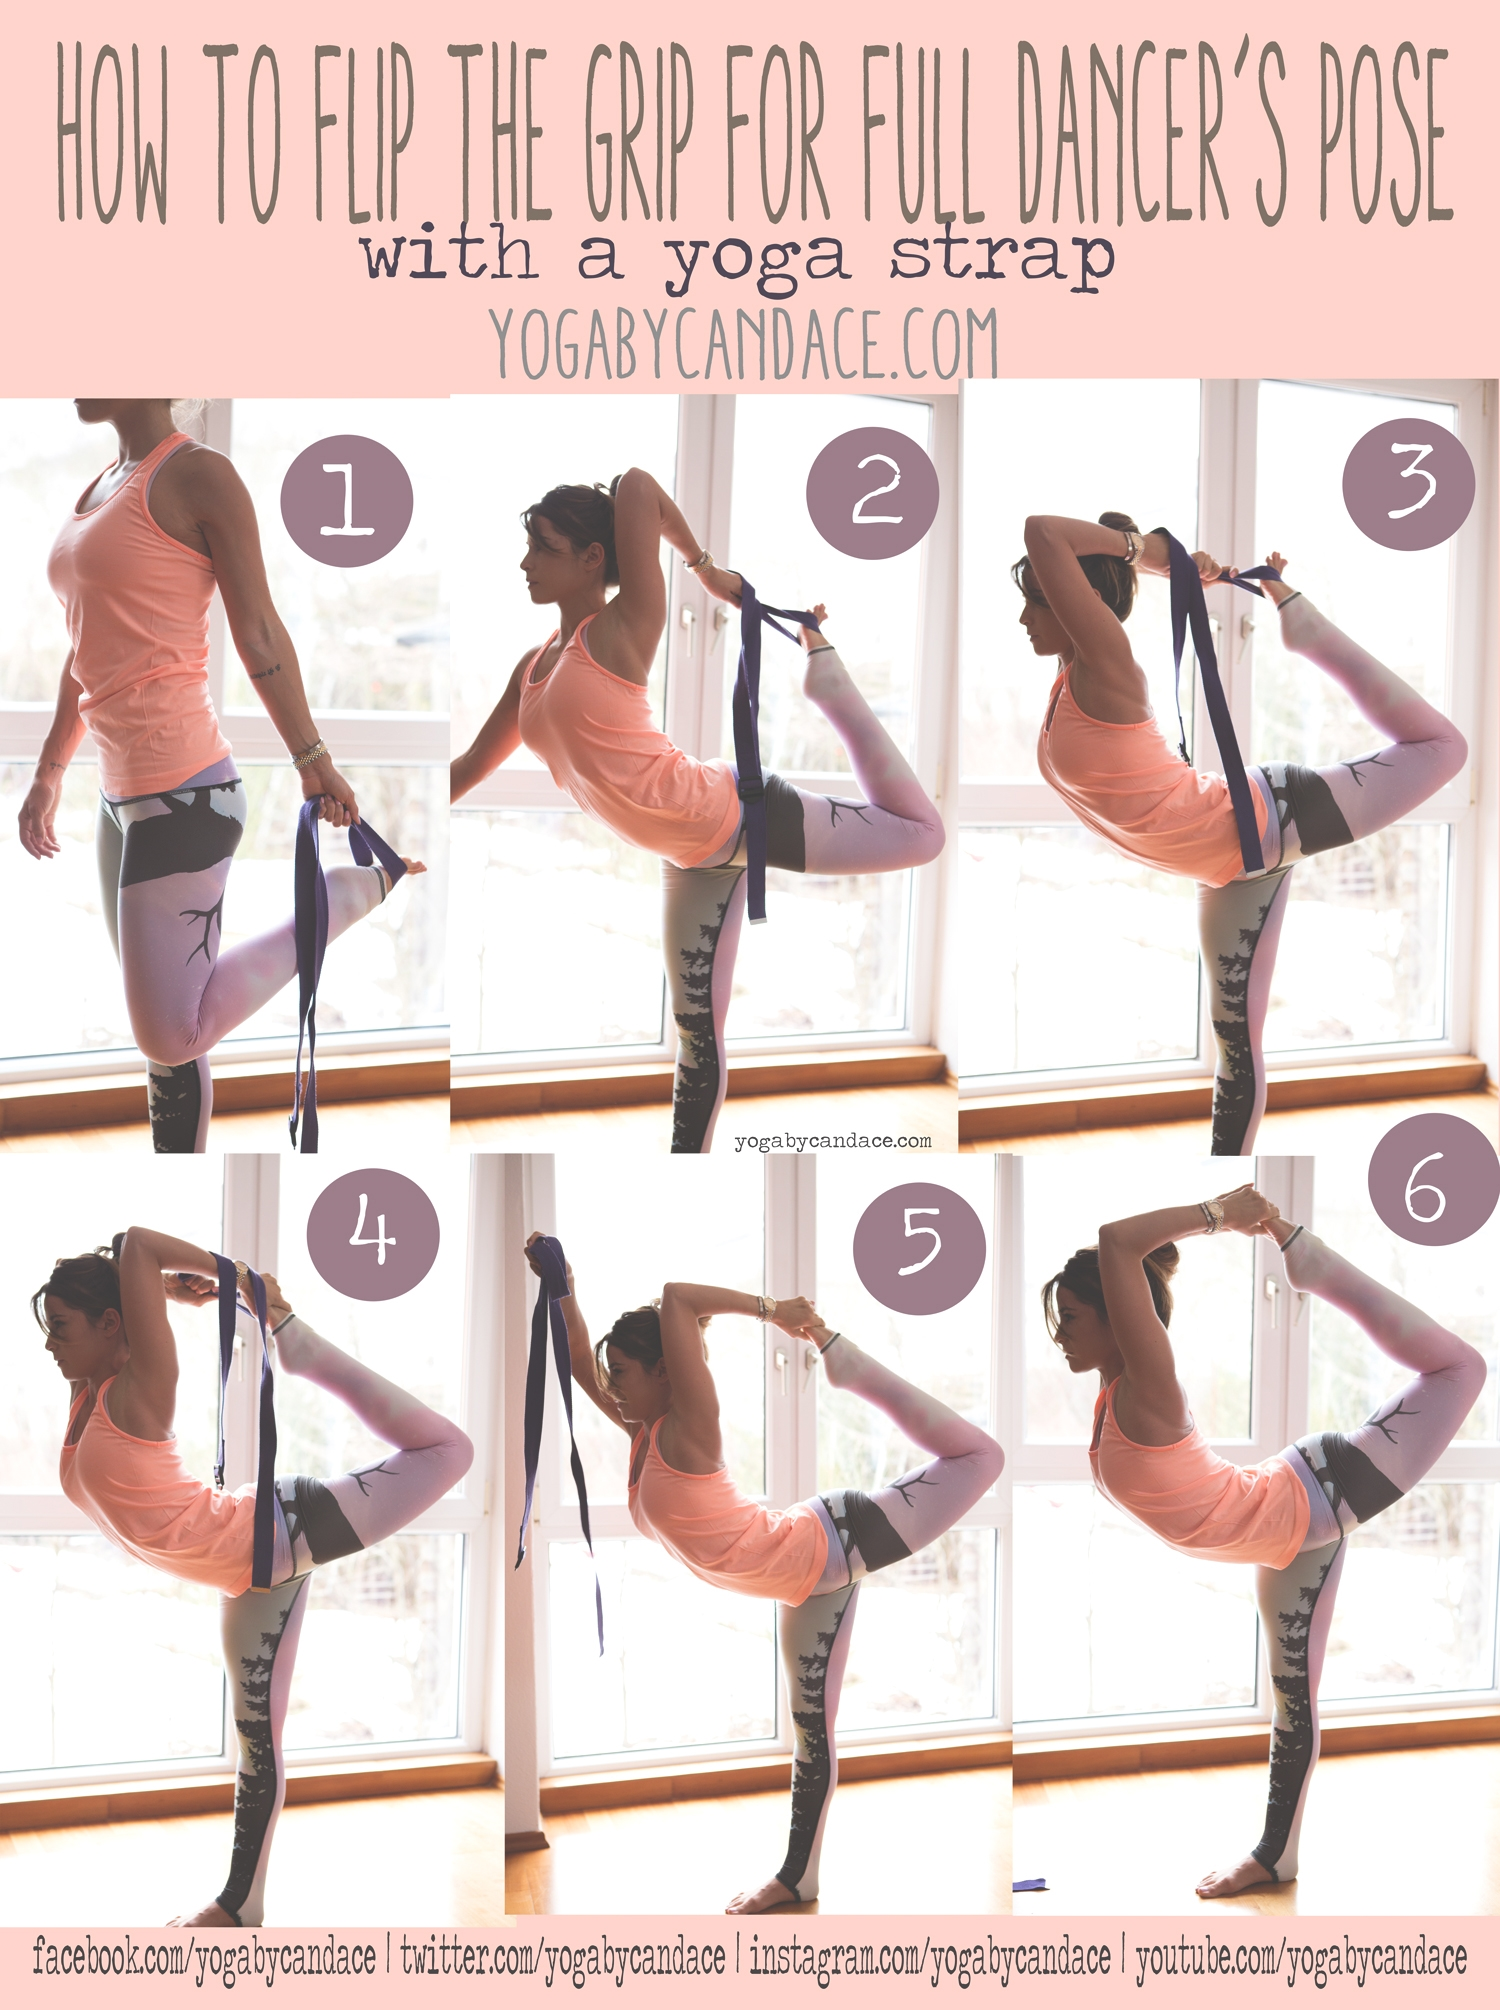 Pin now, practice later! How to flip the grip for full dancer's pose #weightlosstips